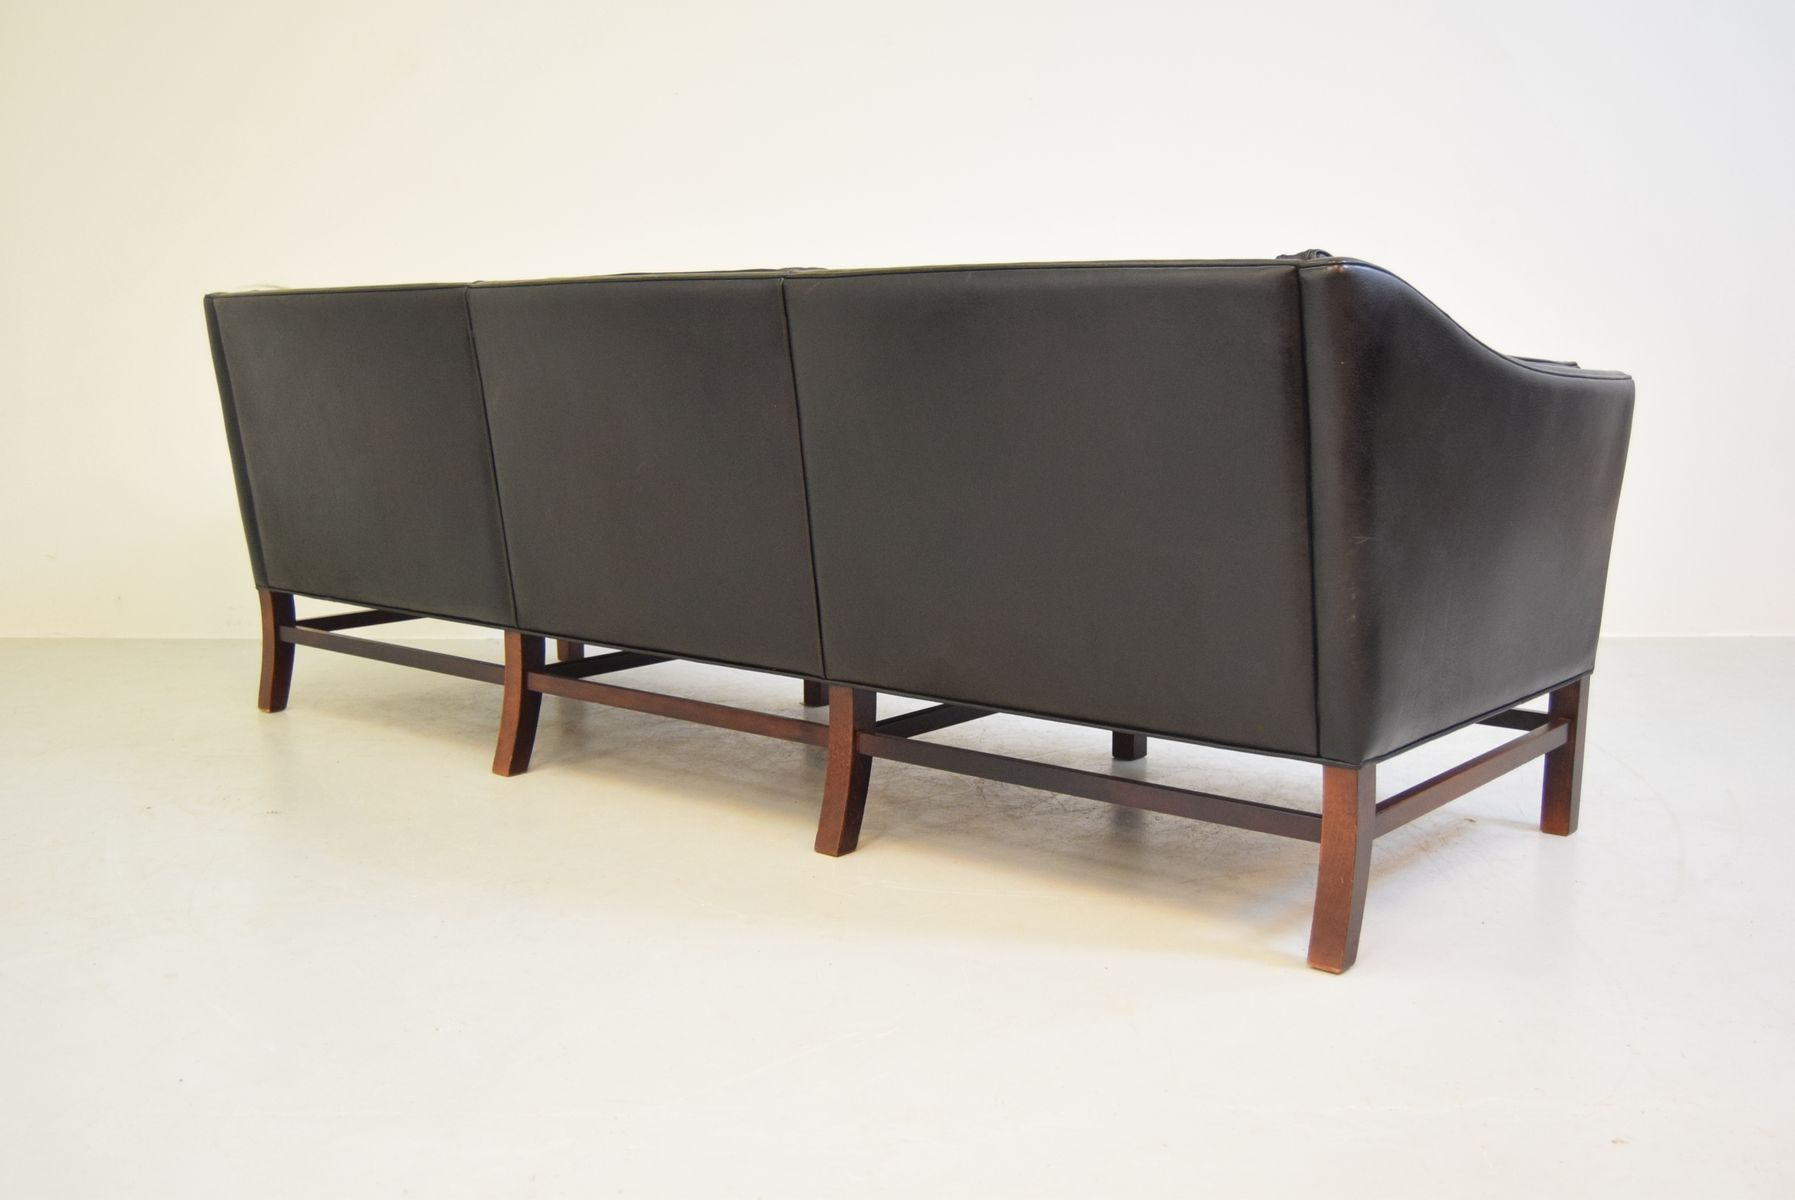 Mid Century Sofa From Grant M Belfabrik 1960s For Sale At Pamono